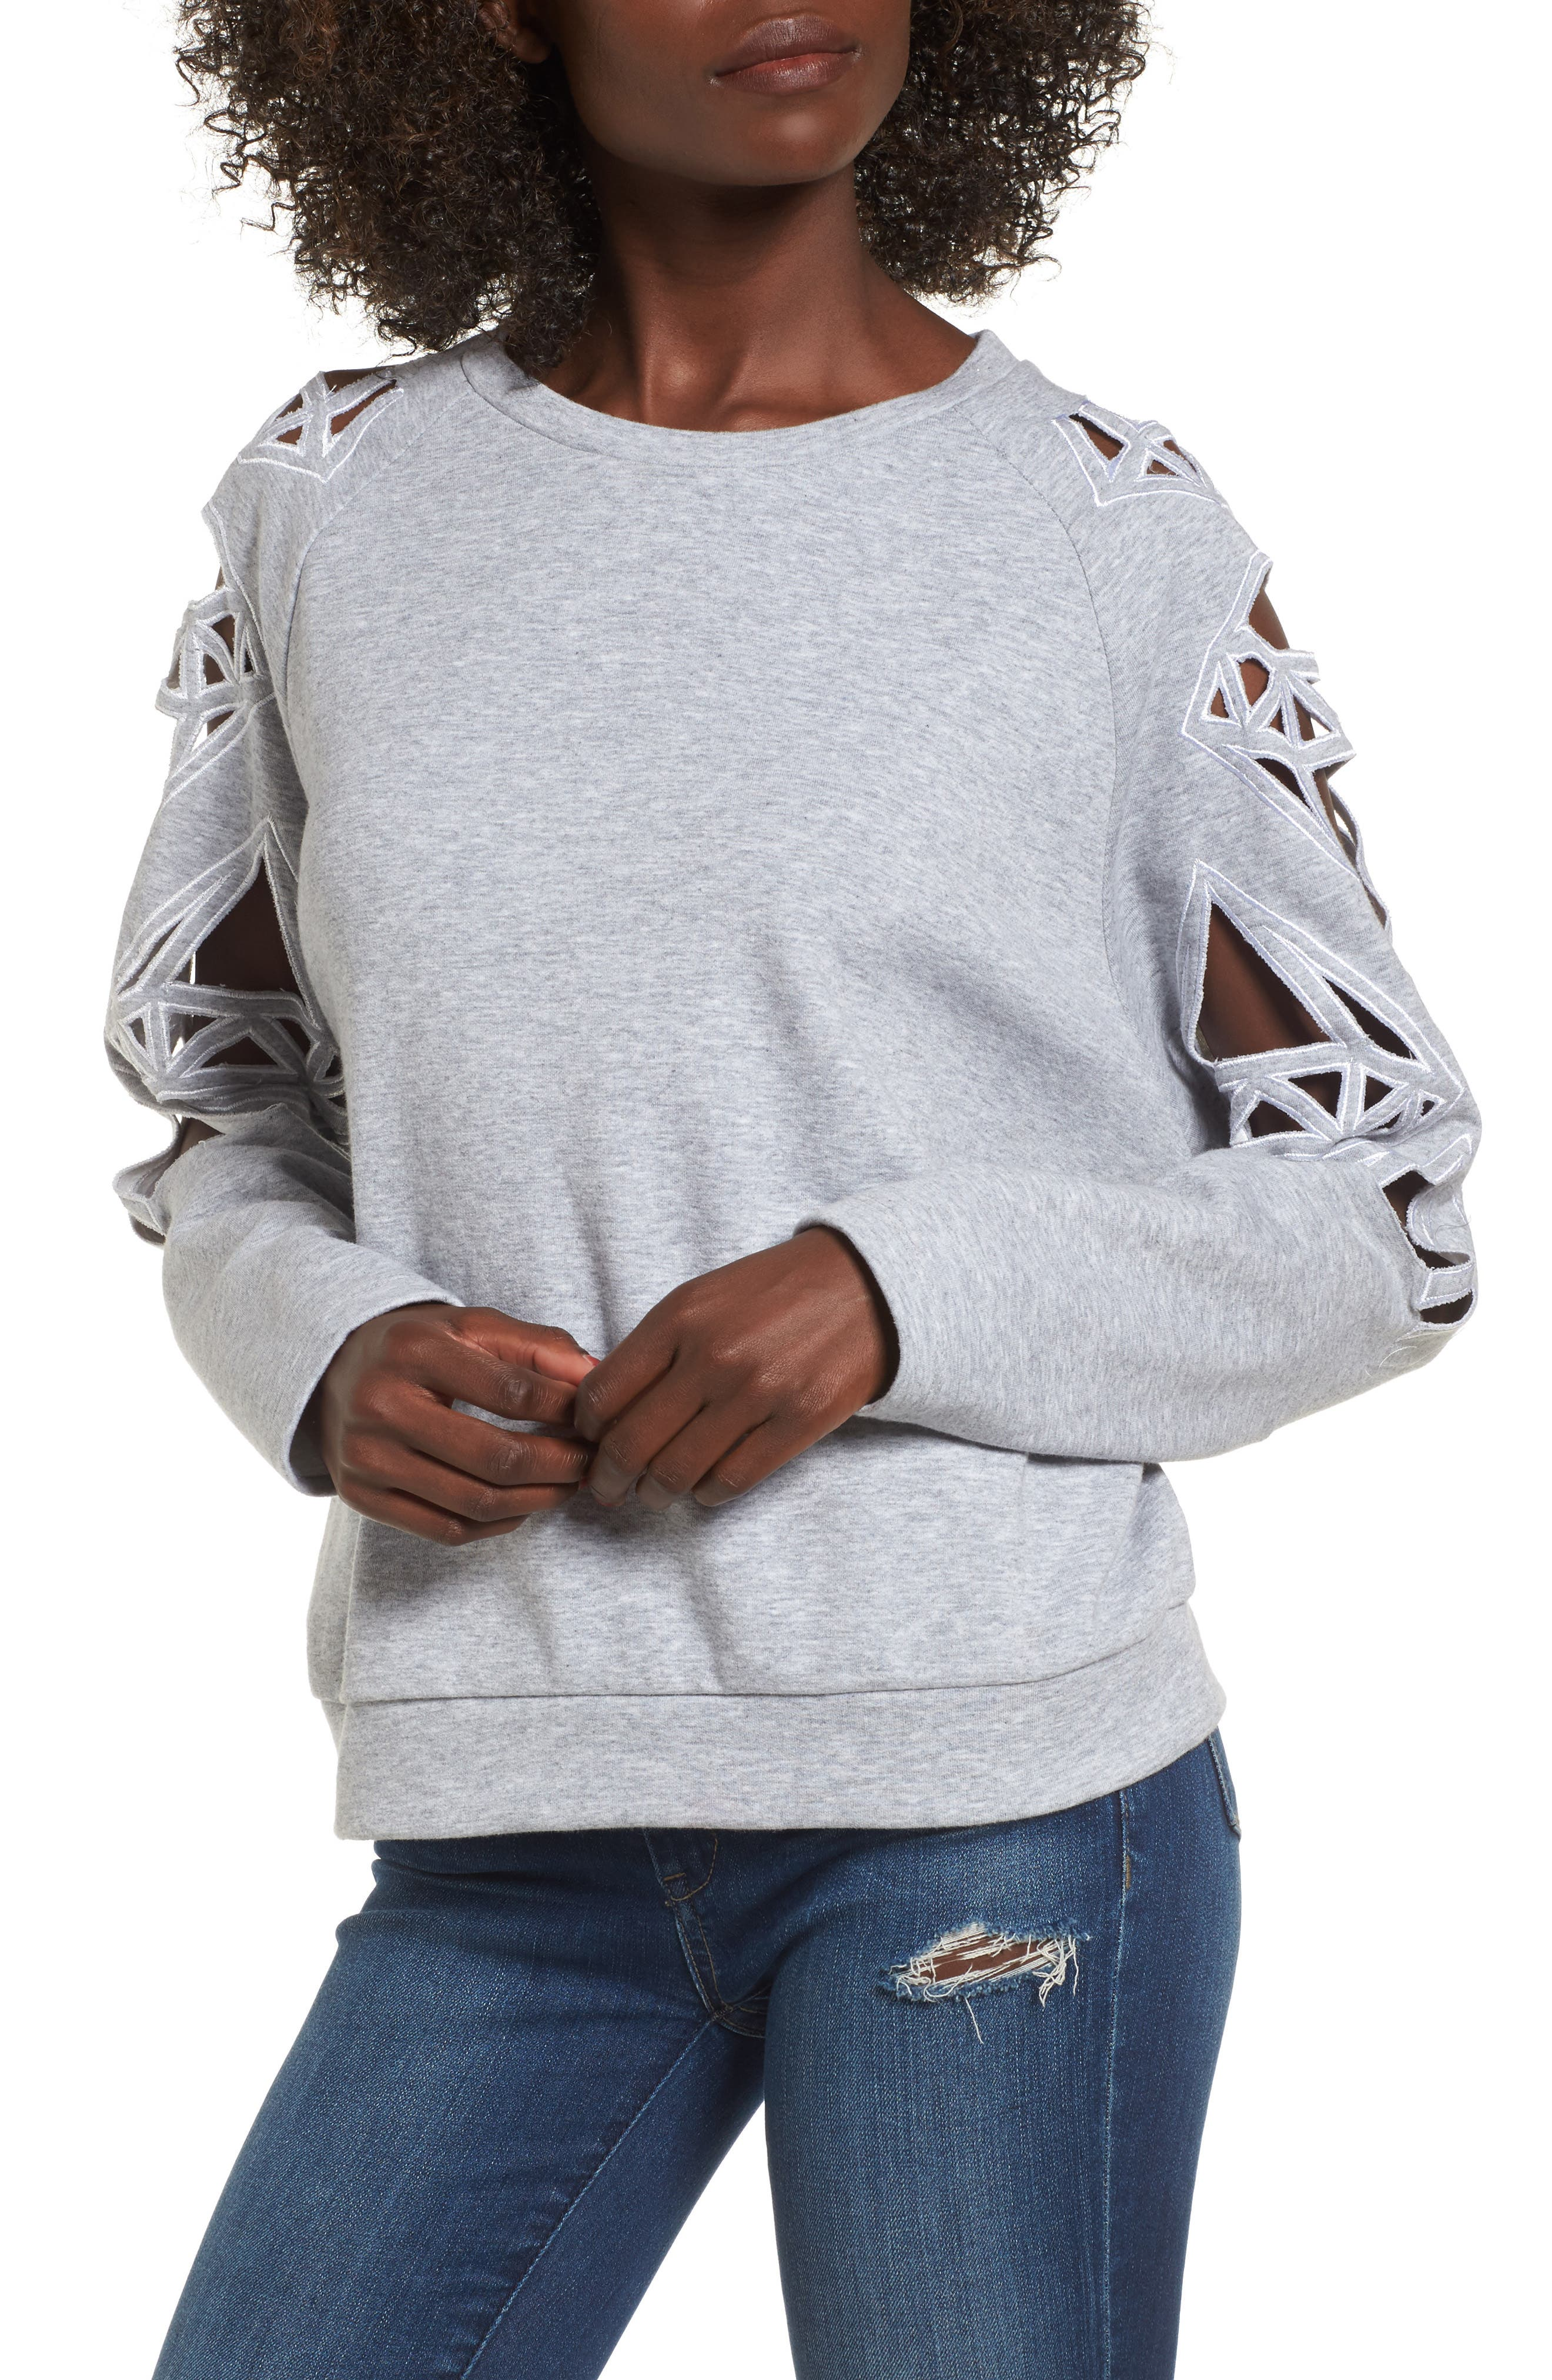 Main Image - Supertrash Taffic Cutout Sweatshirt